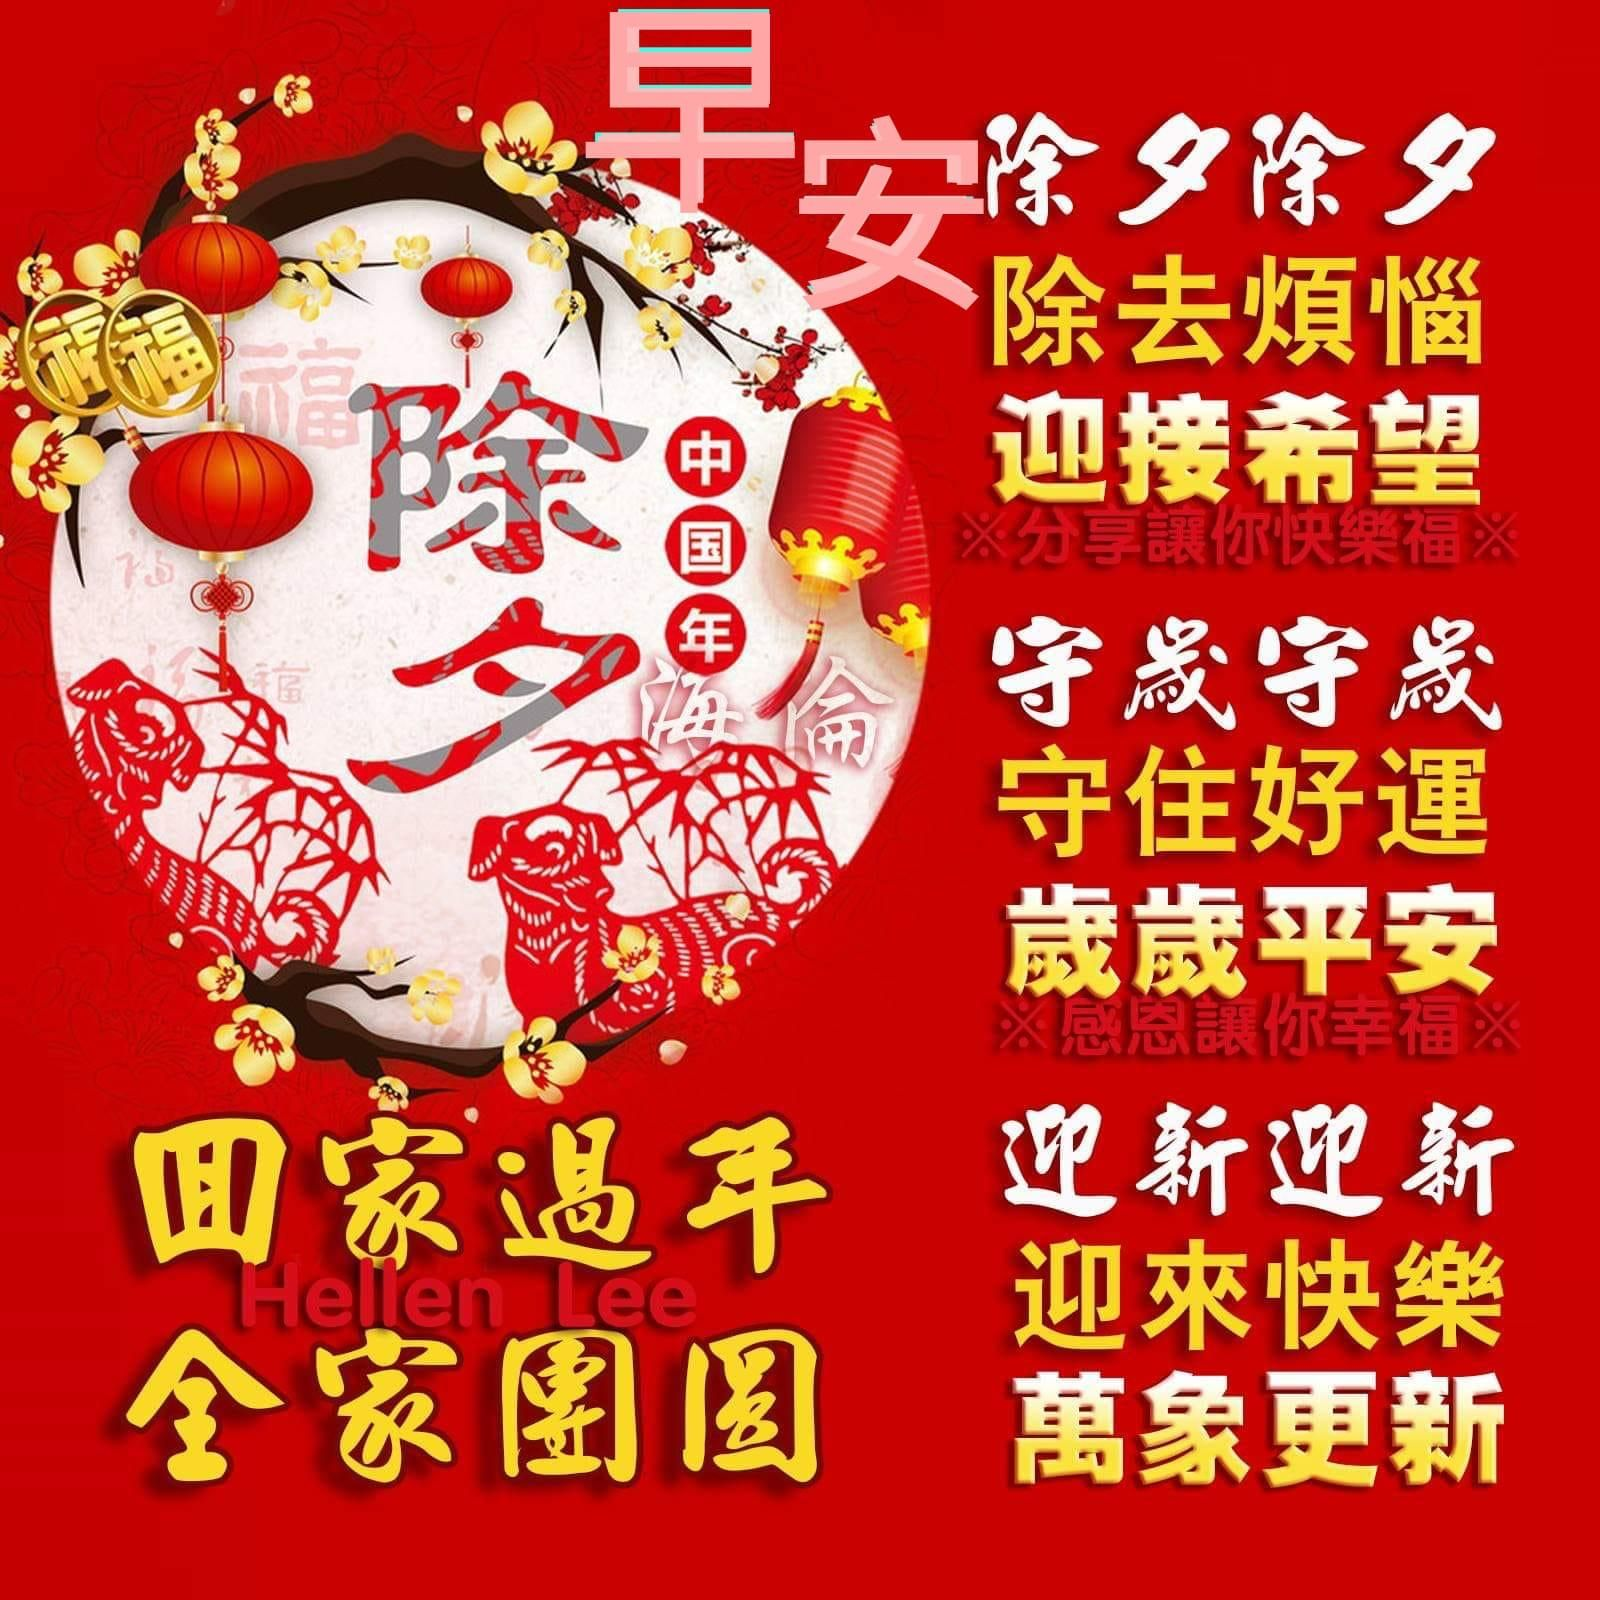 Idea by Jac Lee on 早安午安晚安 Good Morning Chinese new year